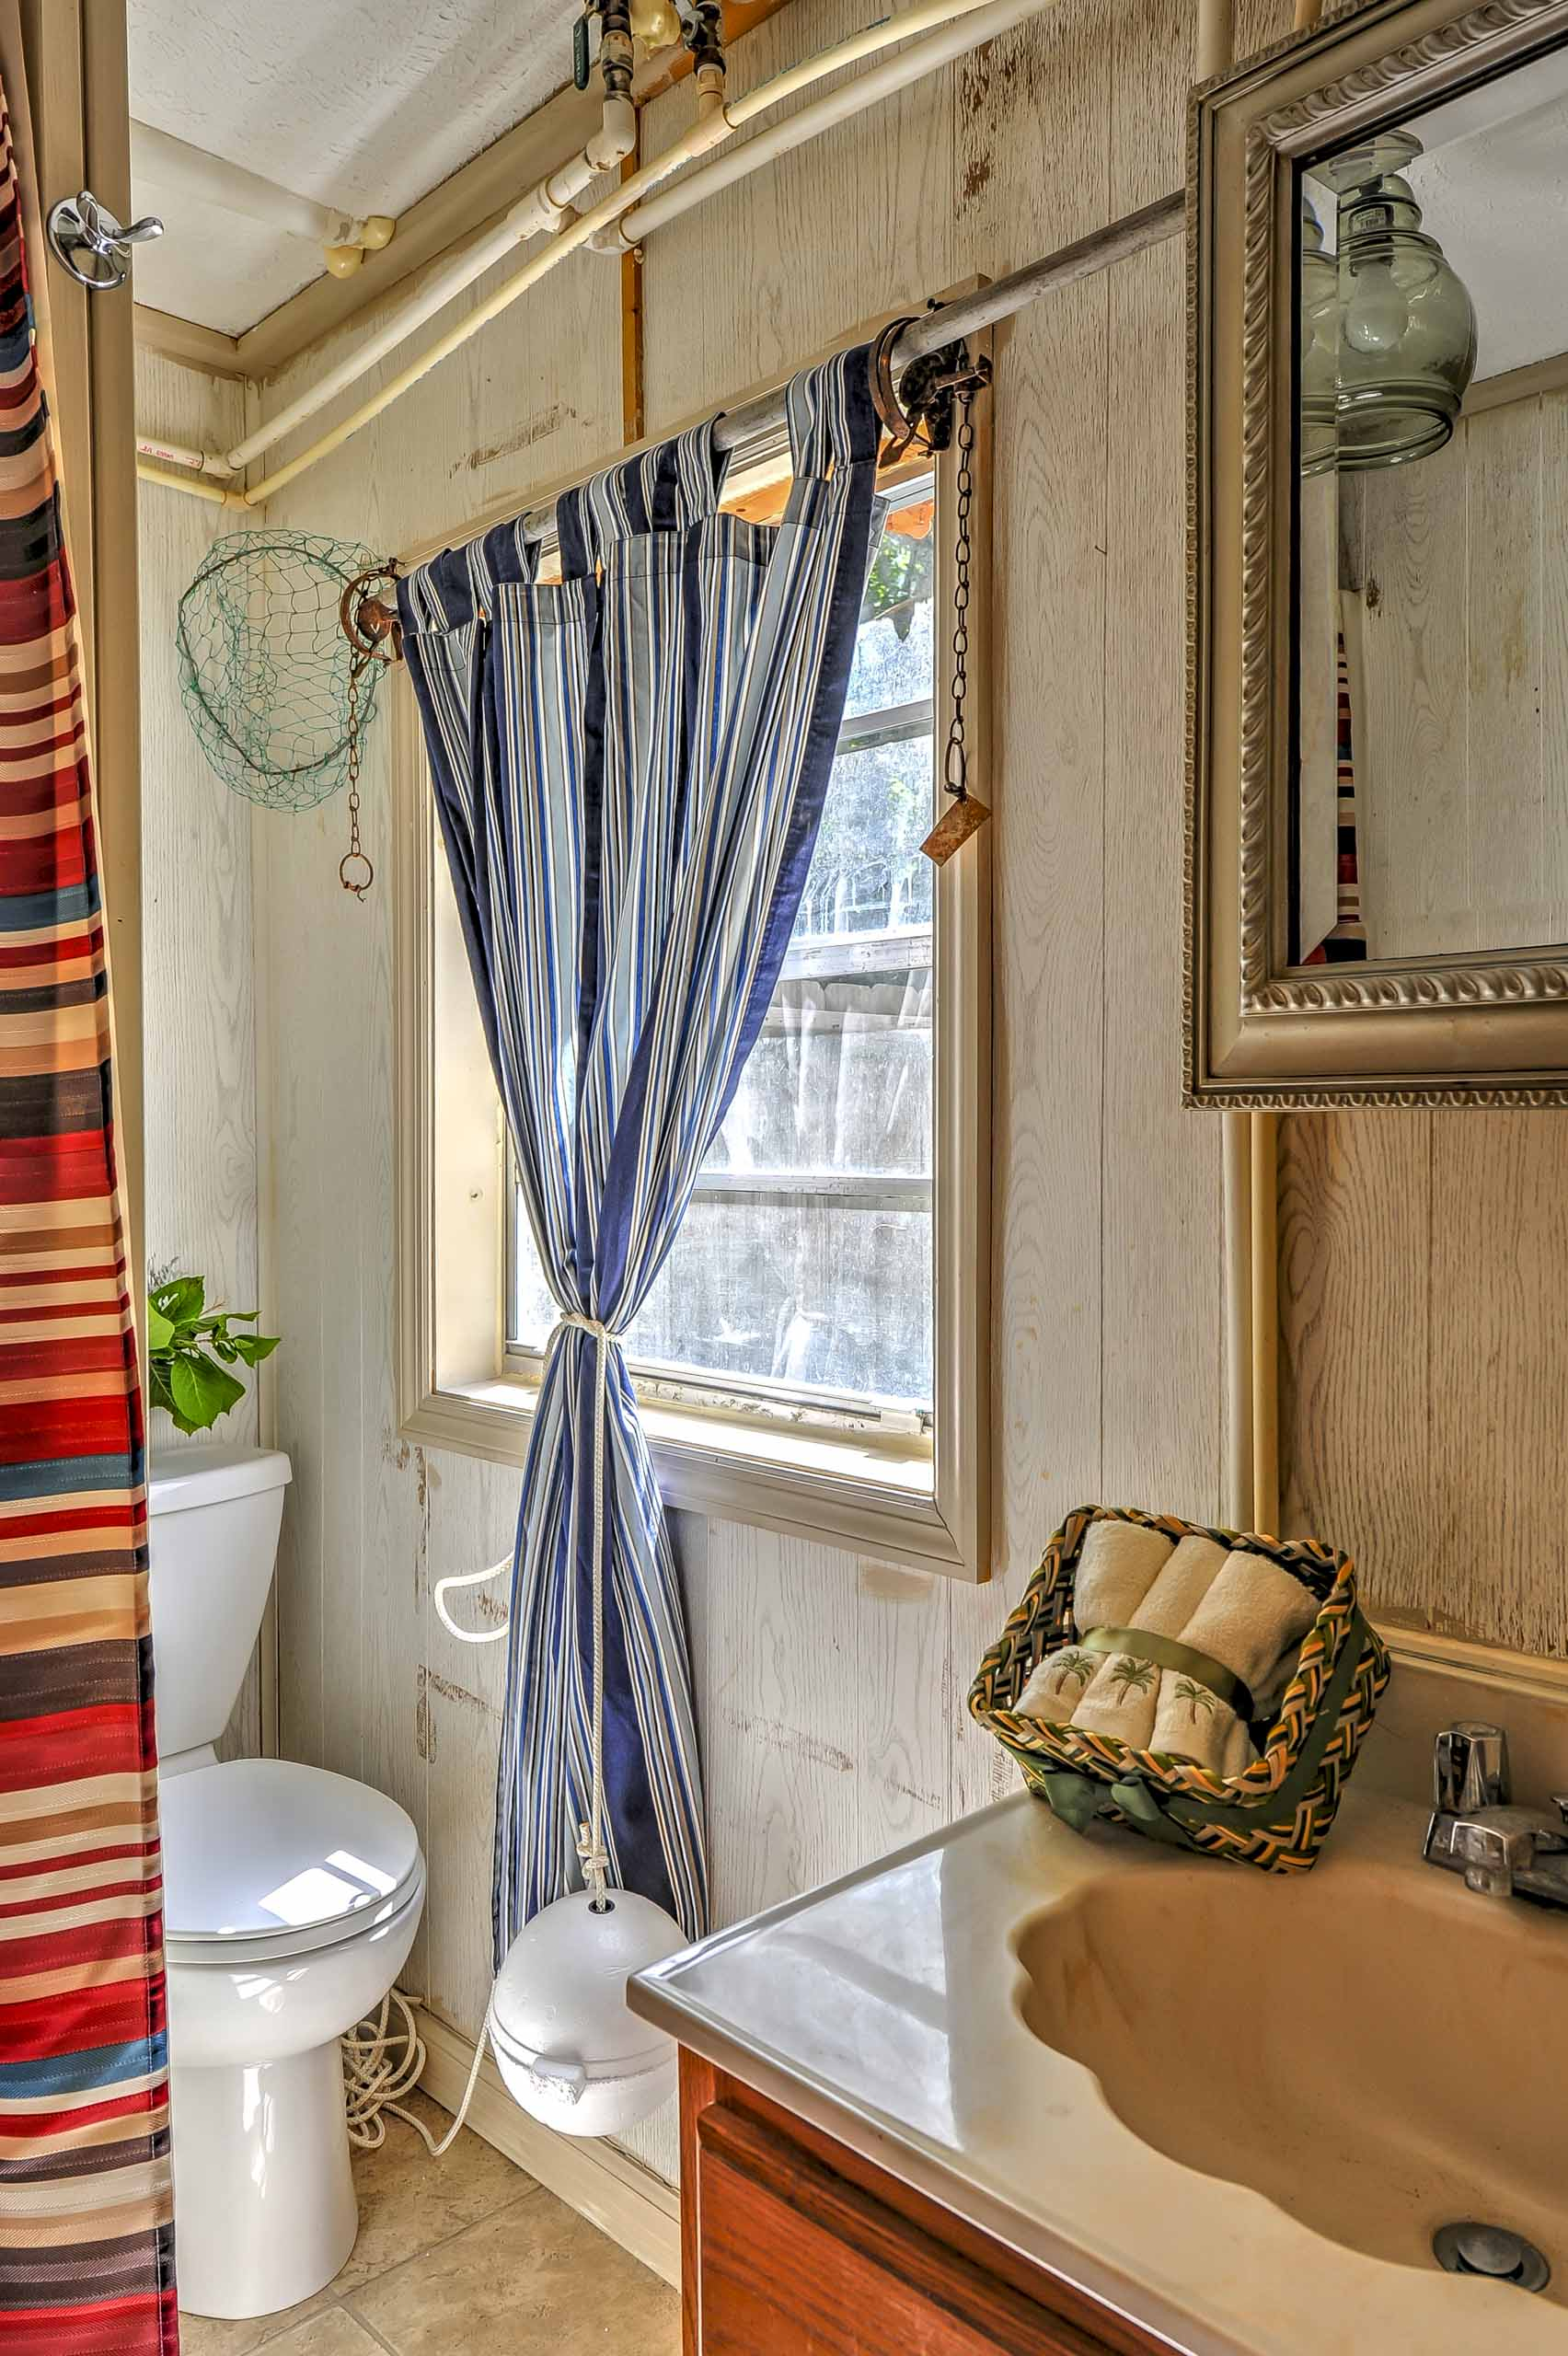 You'll be treated to lavish amenities in the third bathroom